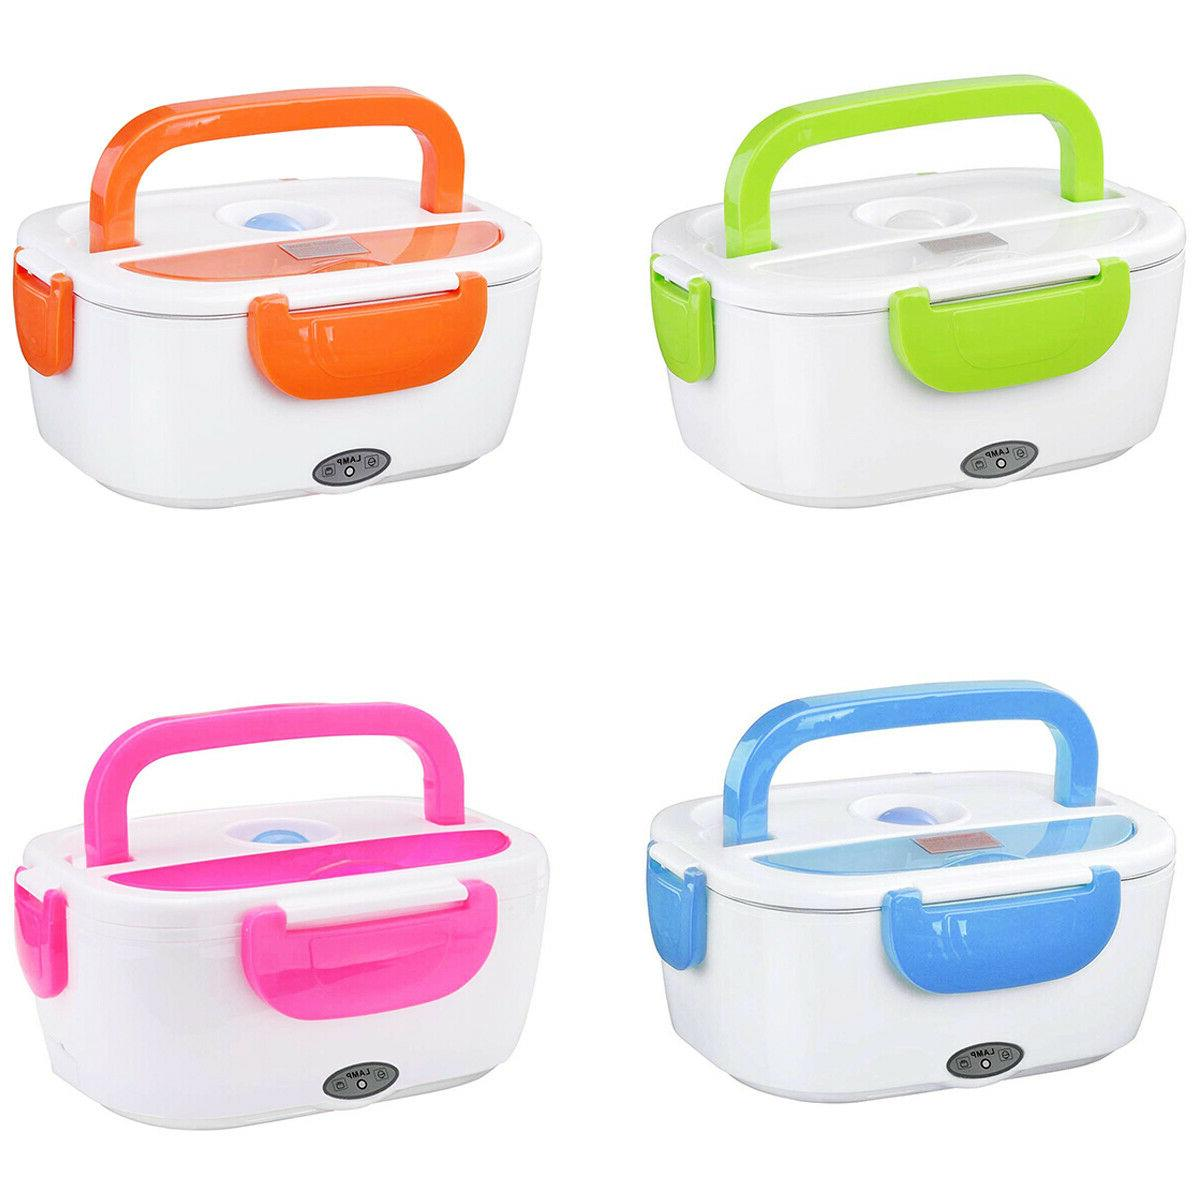 1 5l electric portable lunch box food